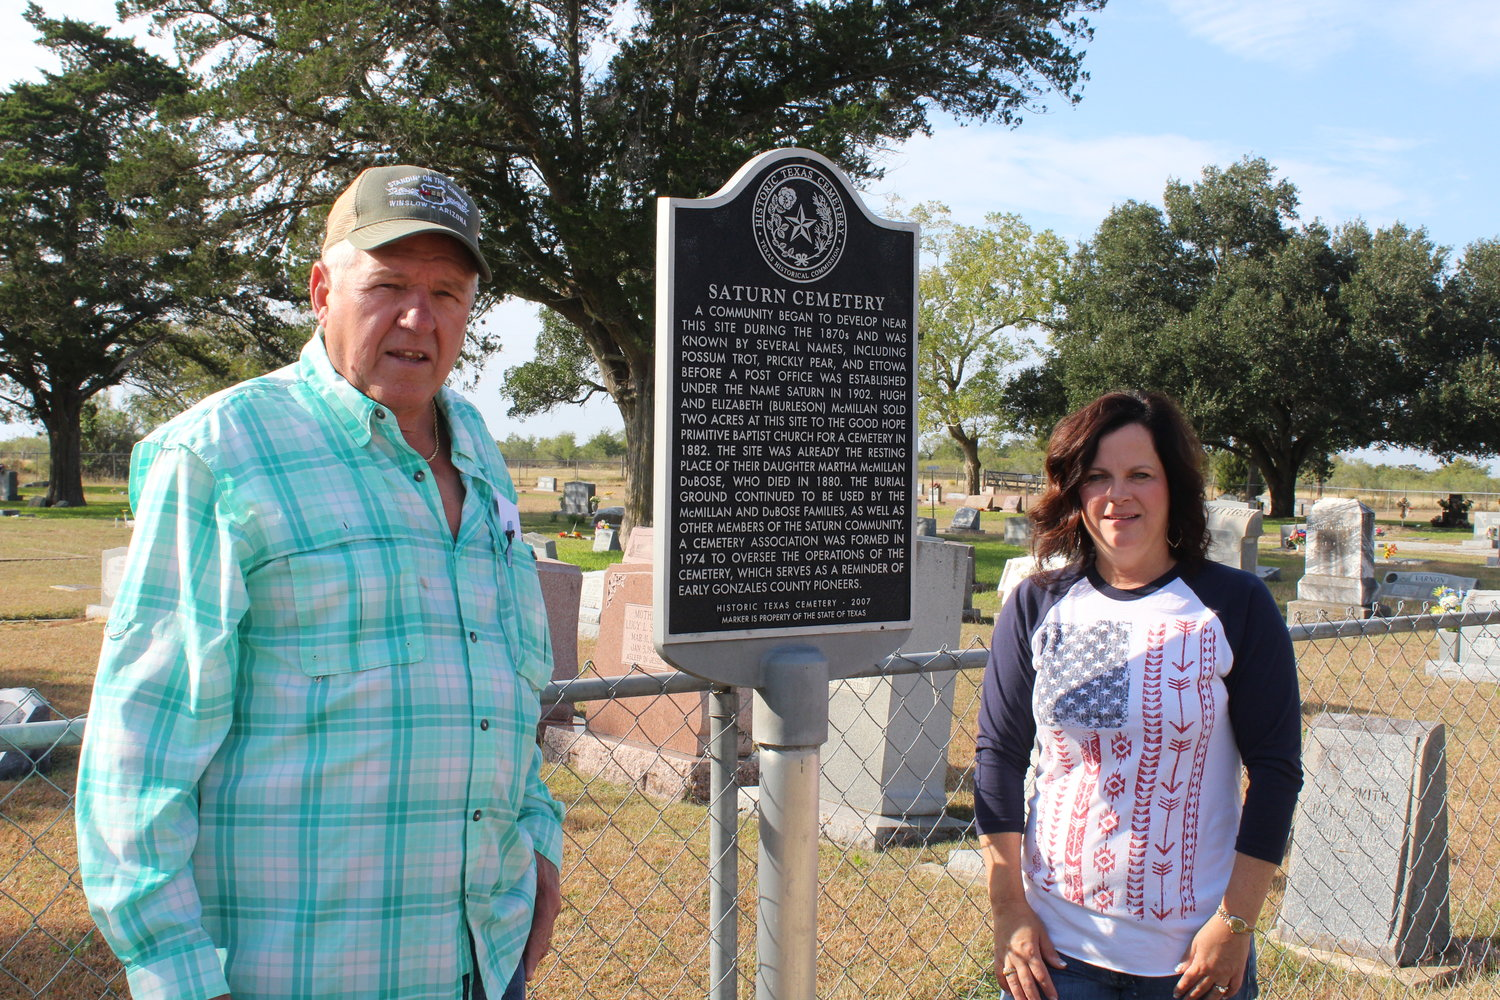 Joe Solansky (left) and Melissa Clampit stand in front of the Saturn Cemetery Historic Register marker while work is being done to clean up and restore the grave sites of 93 veterans interred in the ceremony.